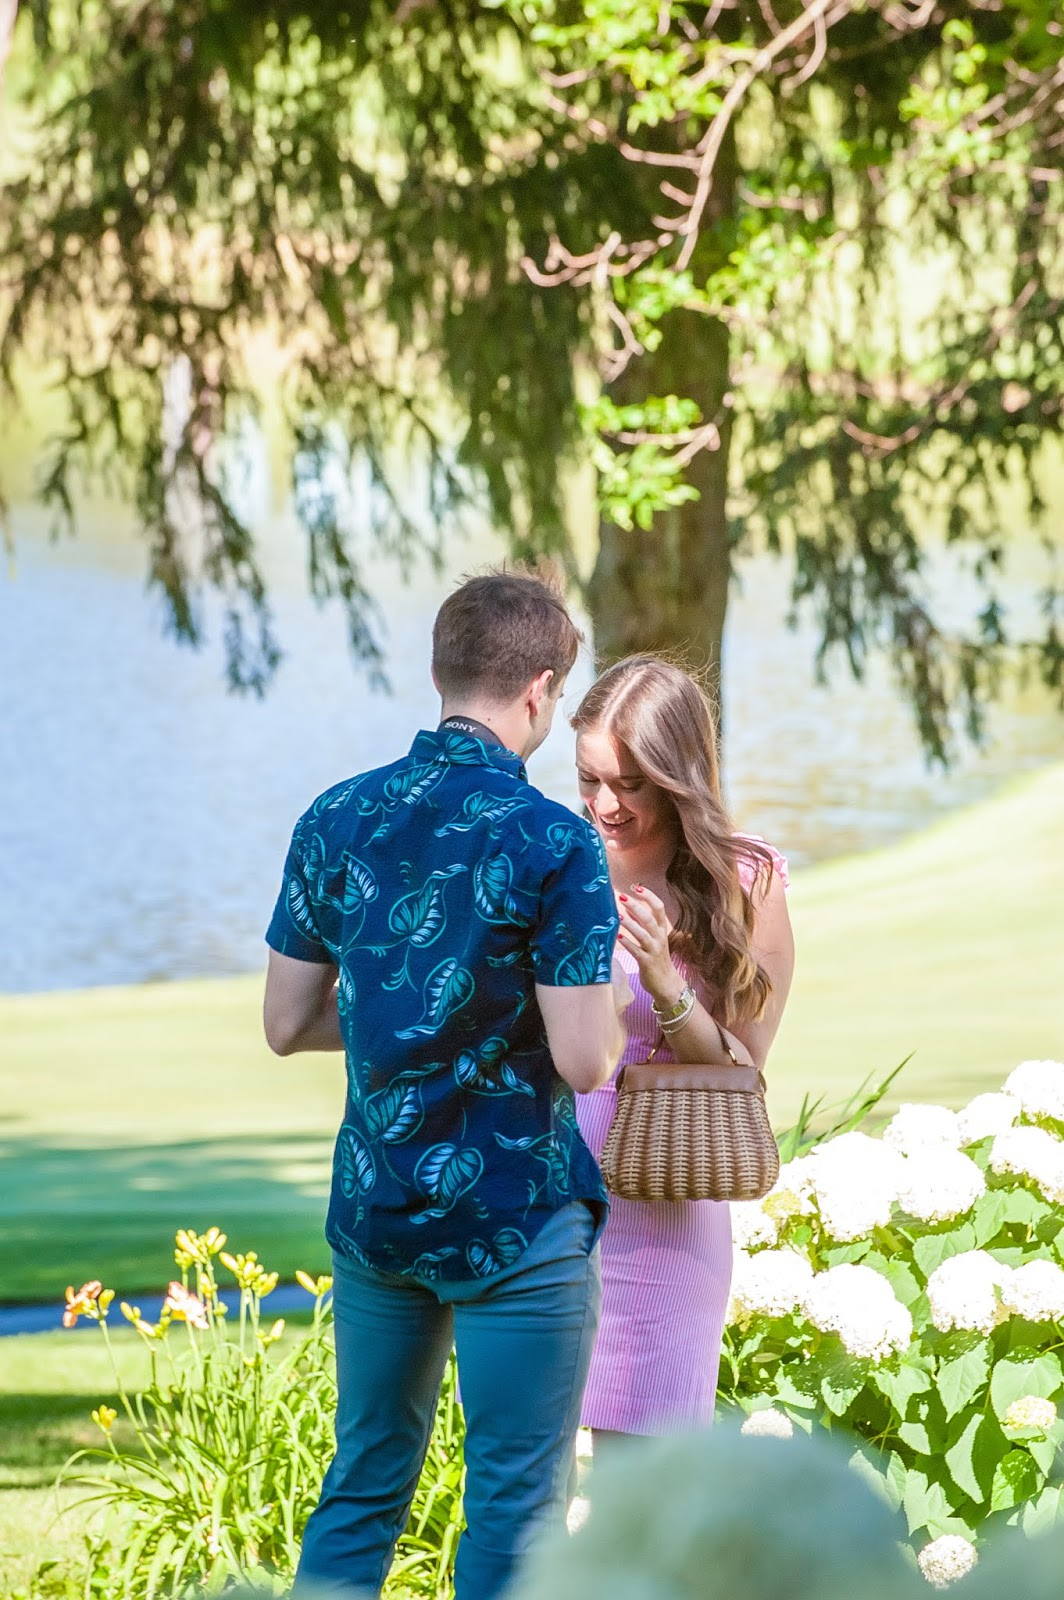 Our Engagement Story featured by popular New York life and style blogger, Covering the Bases